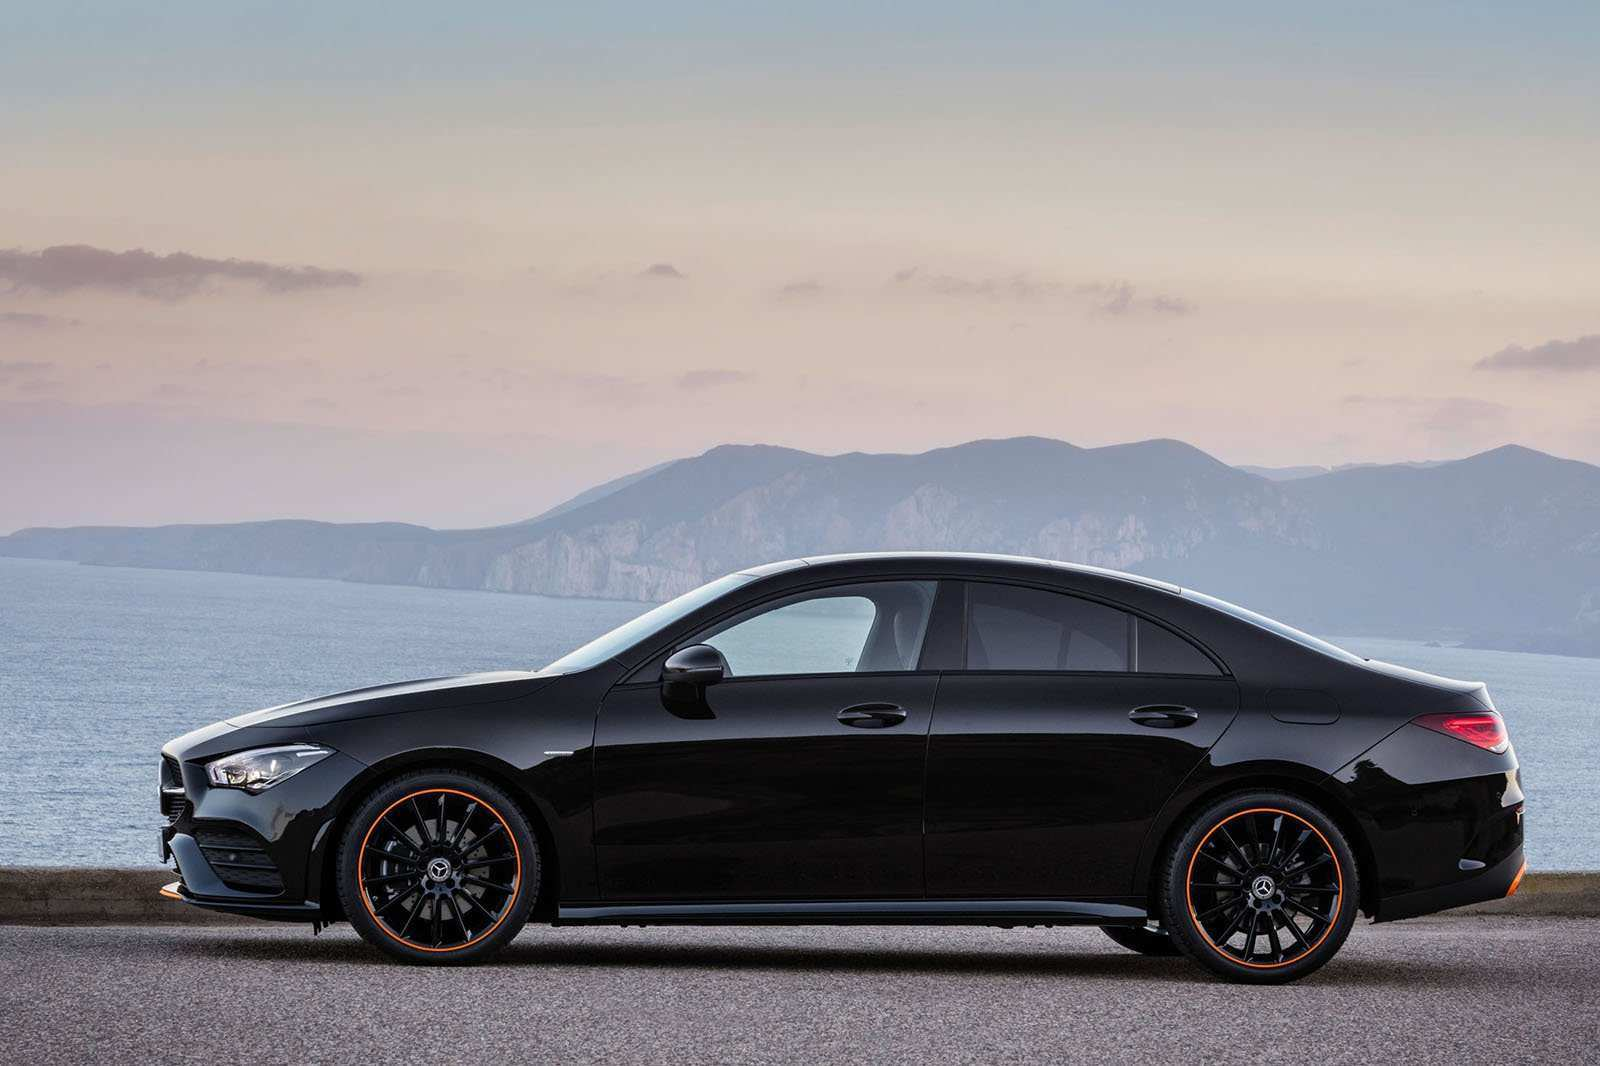 31 Gallery of Mercedes Cla 2019 Release Date Exterior and Interior with Mercedes Cla 2019 Release Date